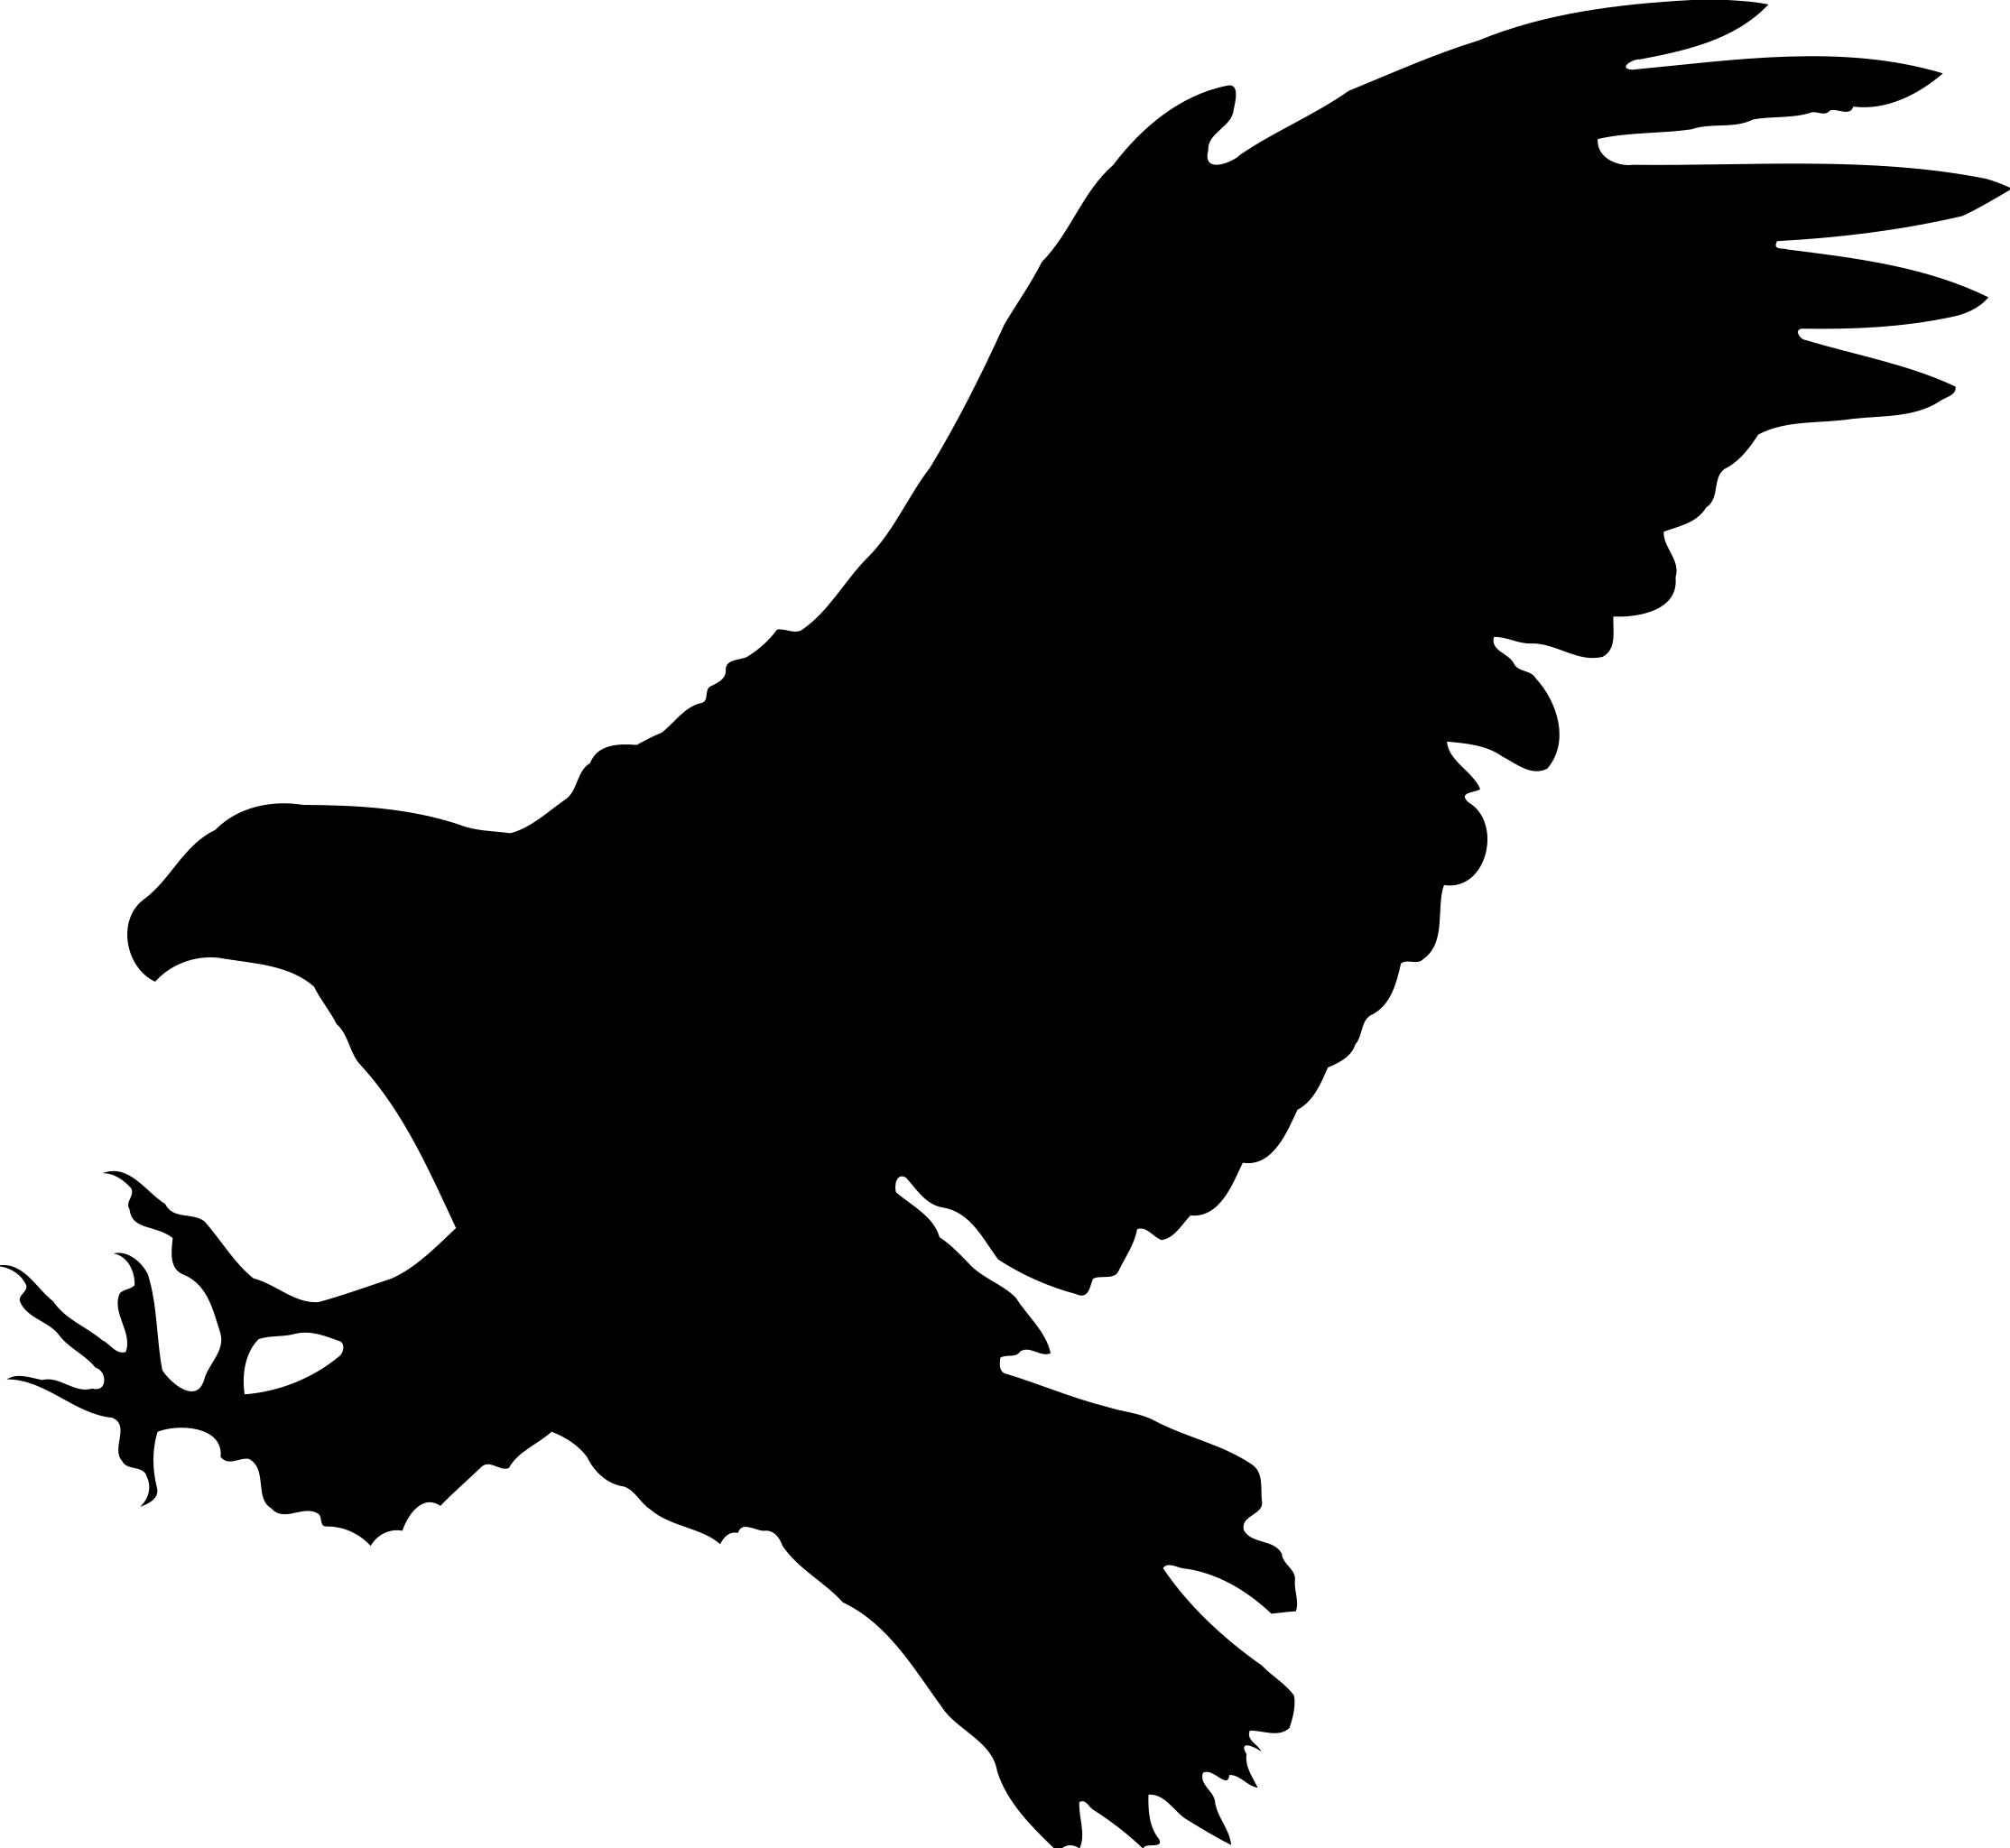 Silhouette eagle clipart png black and white stock Eagle silhouette clipart 4 » Clipart Station png black and white stock